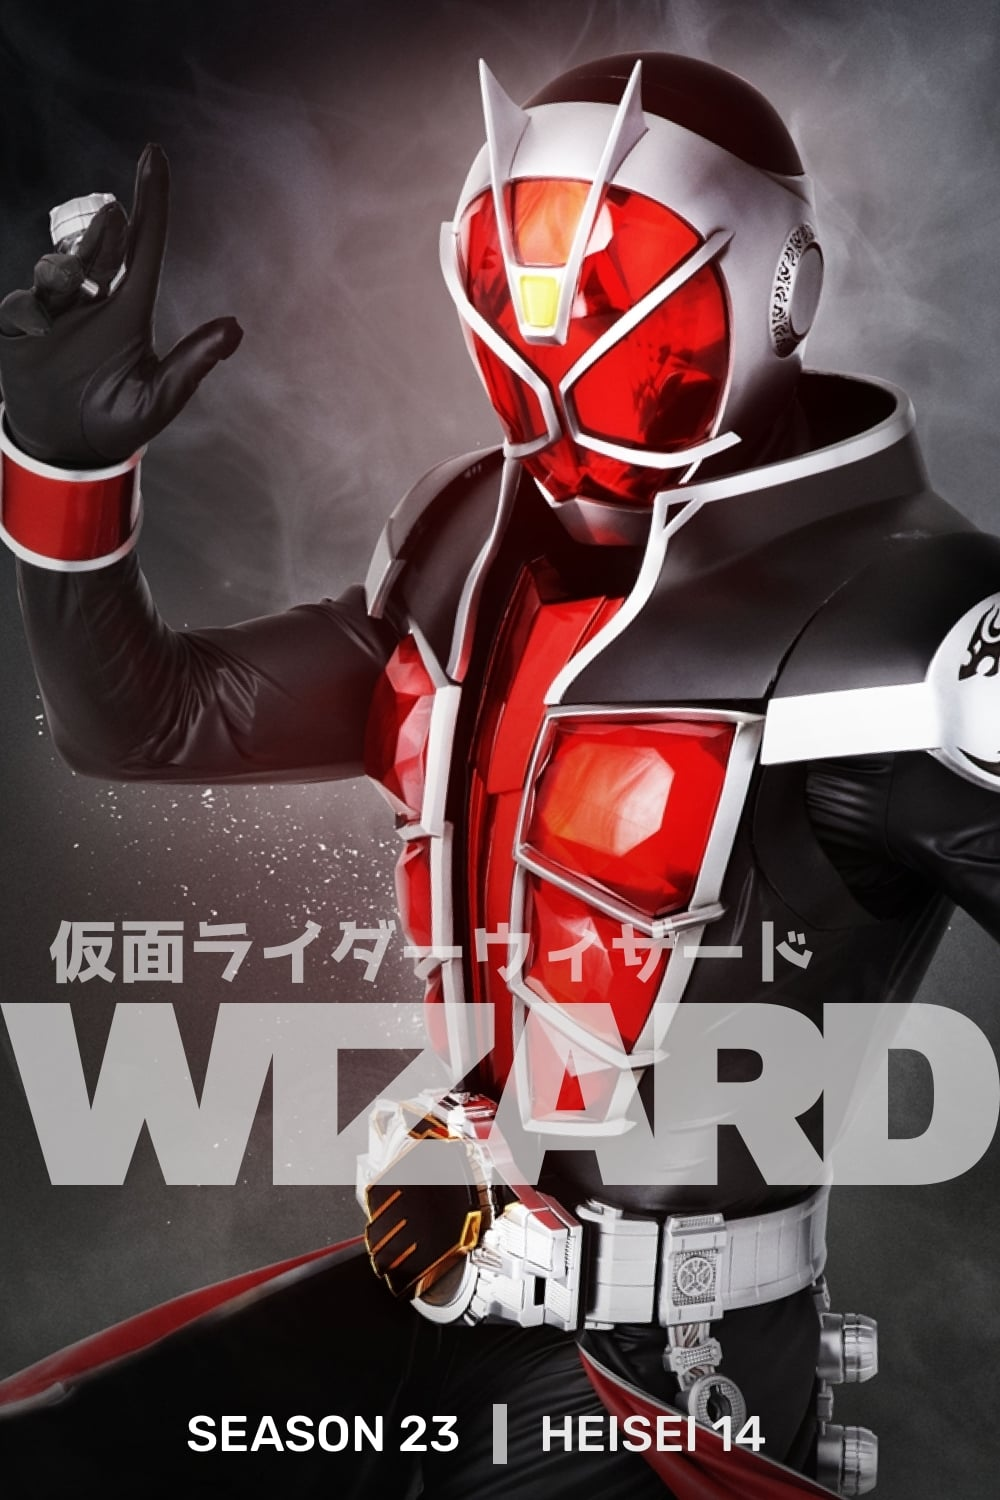 Kamen Rider - Season 21 Episode 7 : Useless Husband, A Trap, Big Win Season 23